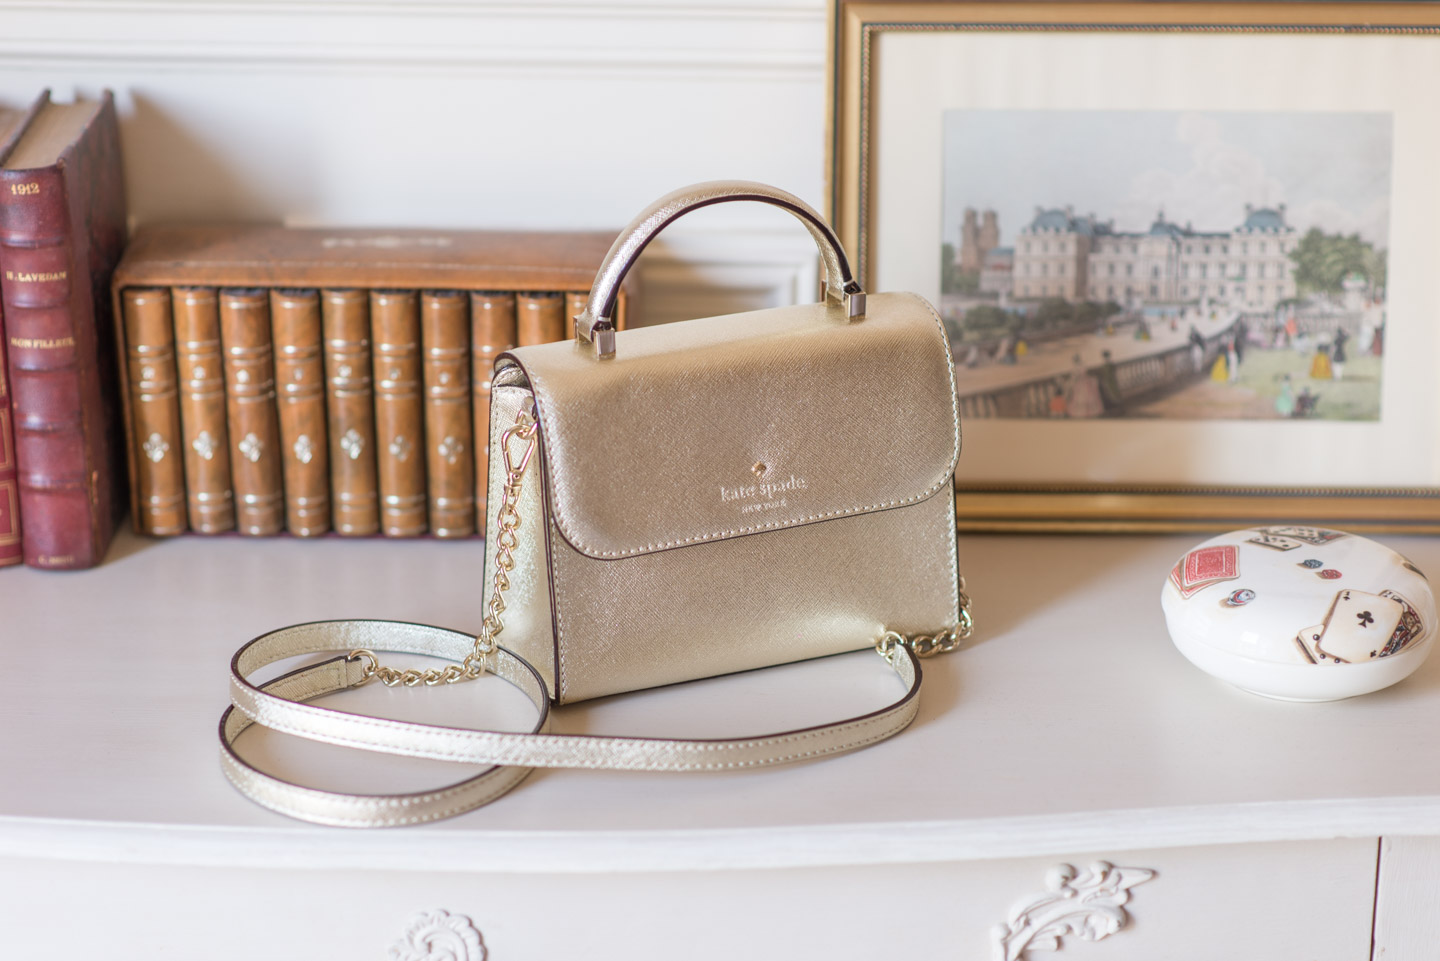 Blog-Mode-And-The-City-Lifestyle-Cadeaux-Noel-2015-Sac-Kate-Spade